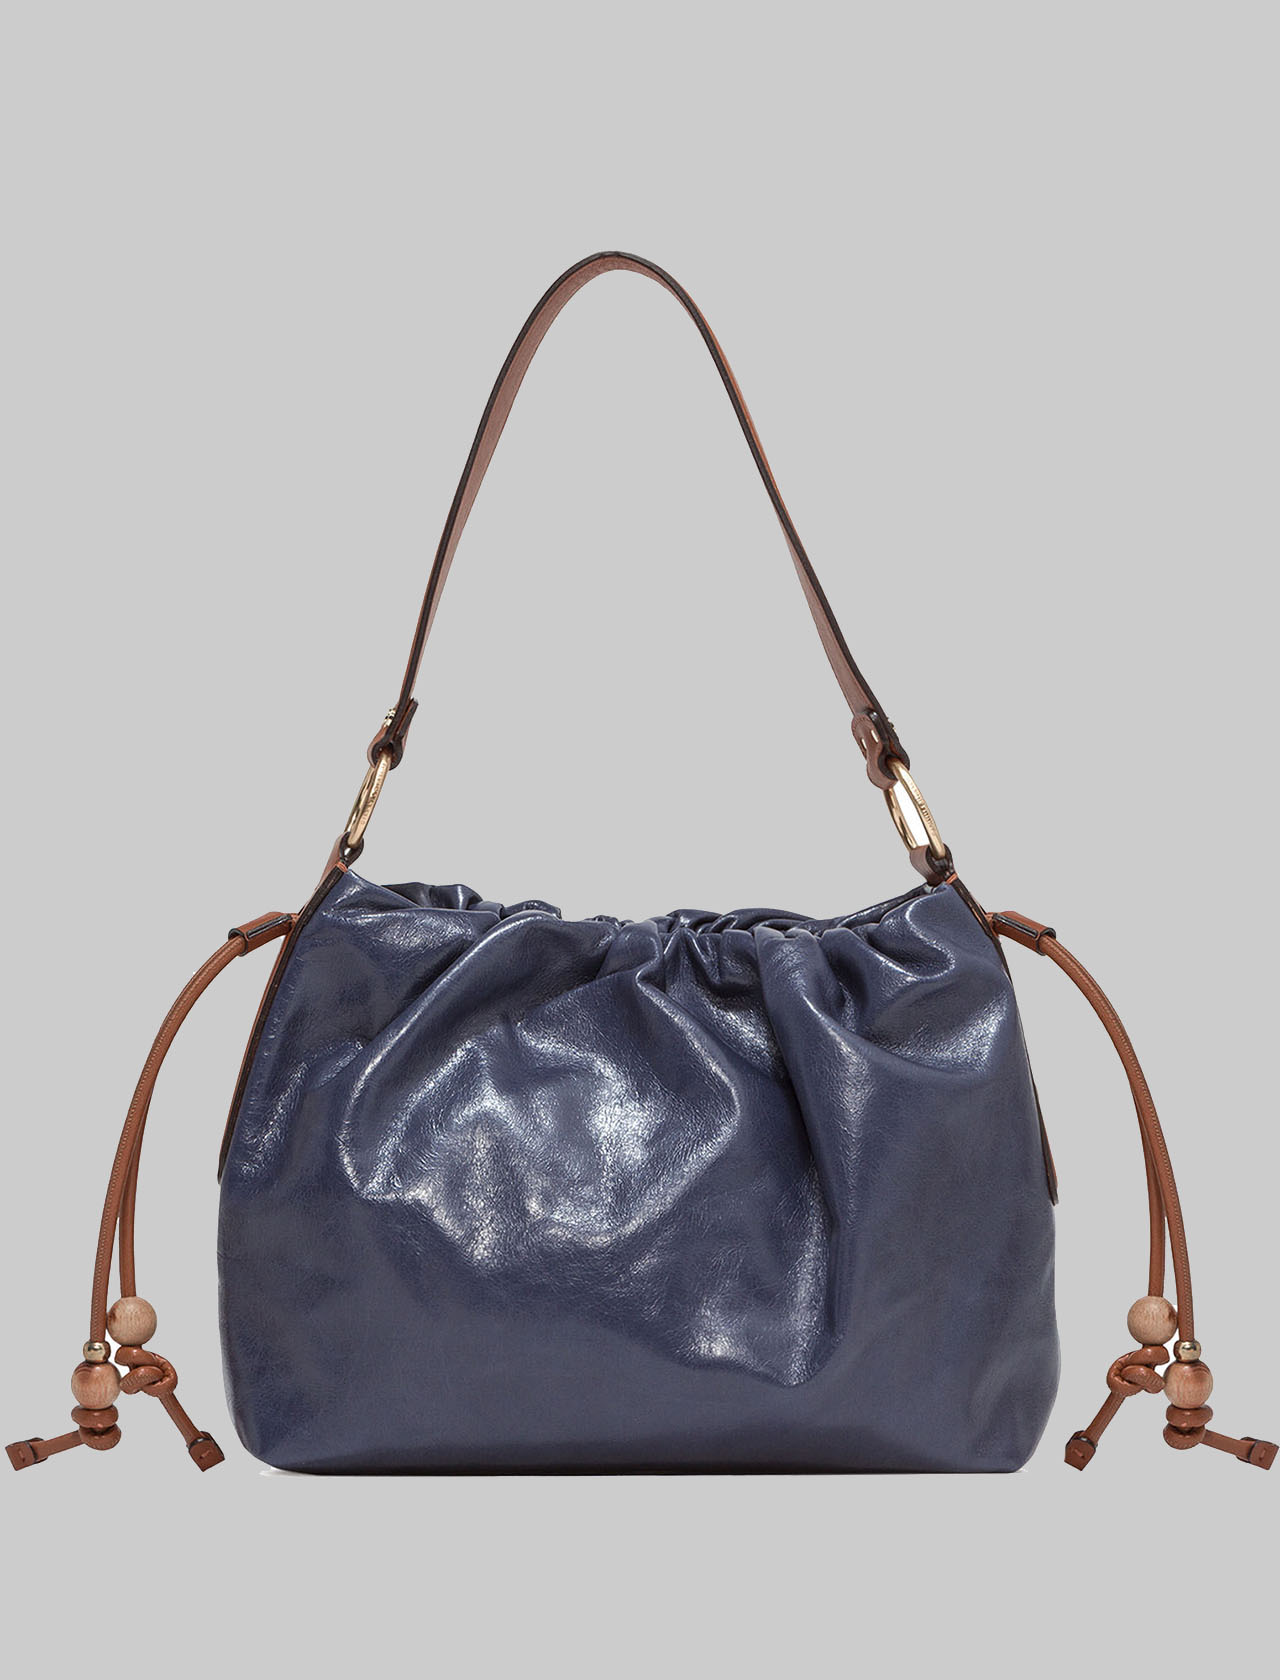 Peonia Woman Shoulder Bag In Blue Leather With Laces And Leather Shoulder Strap Gianni Chiarini | Bags and backpacks | BS84201394